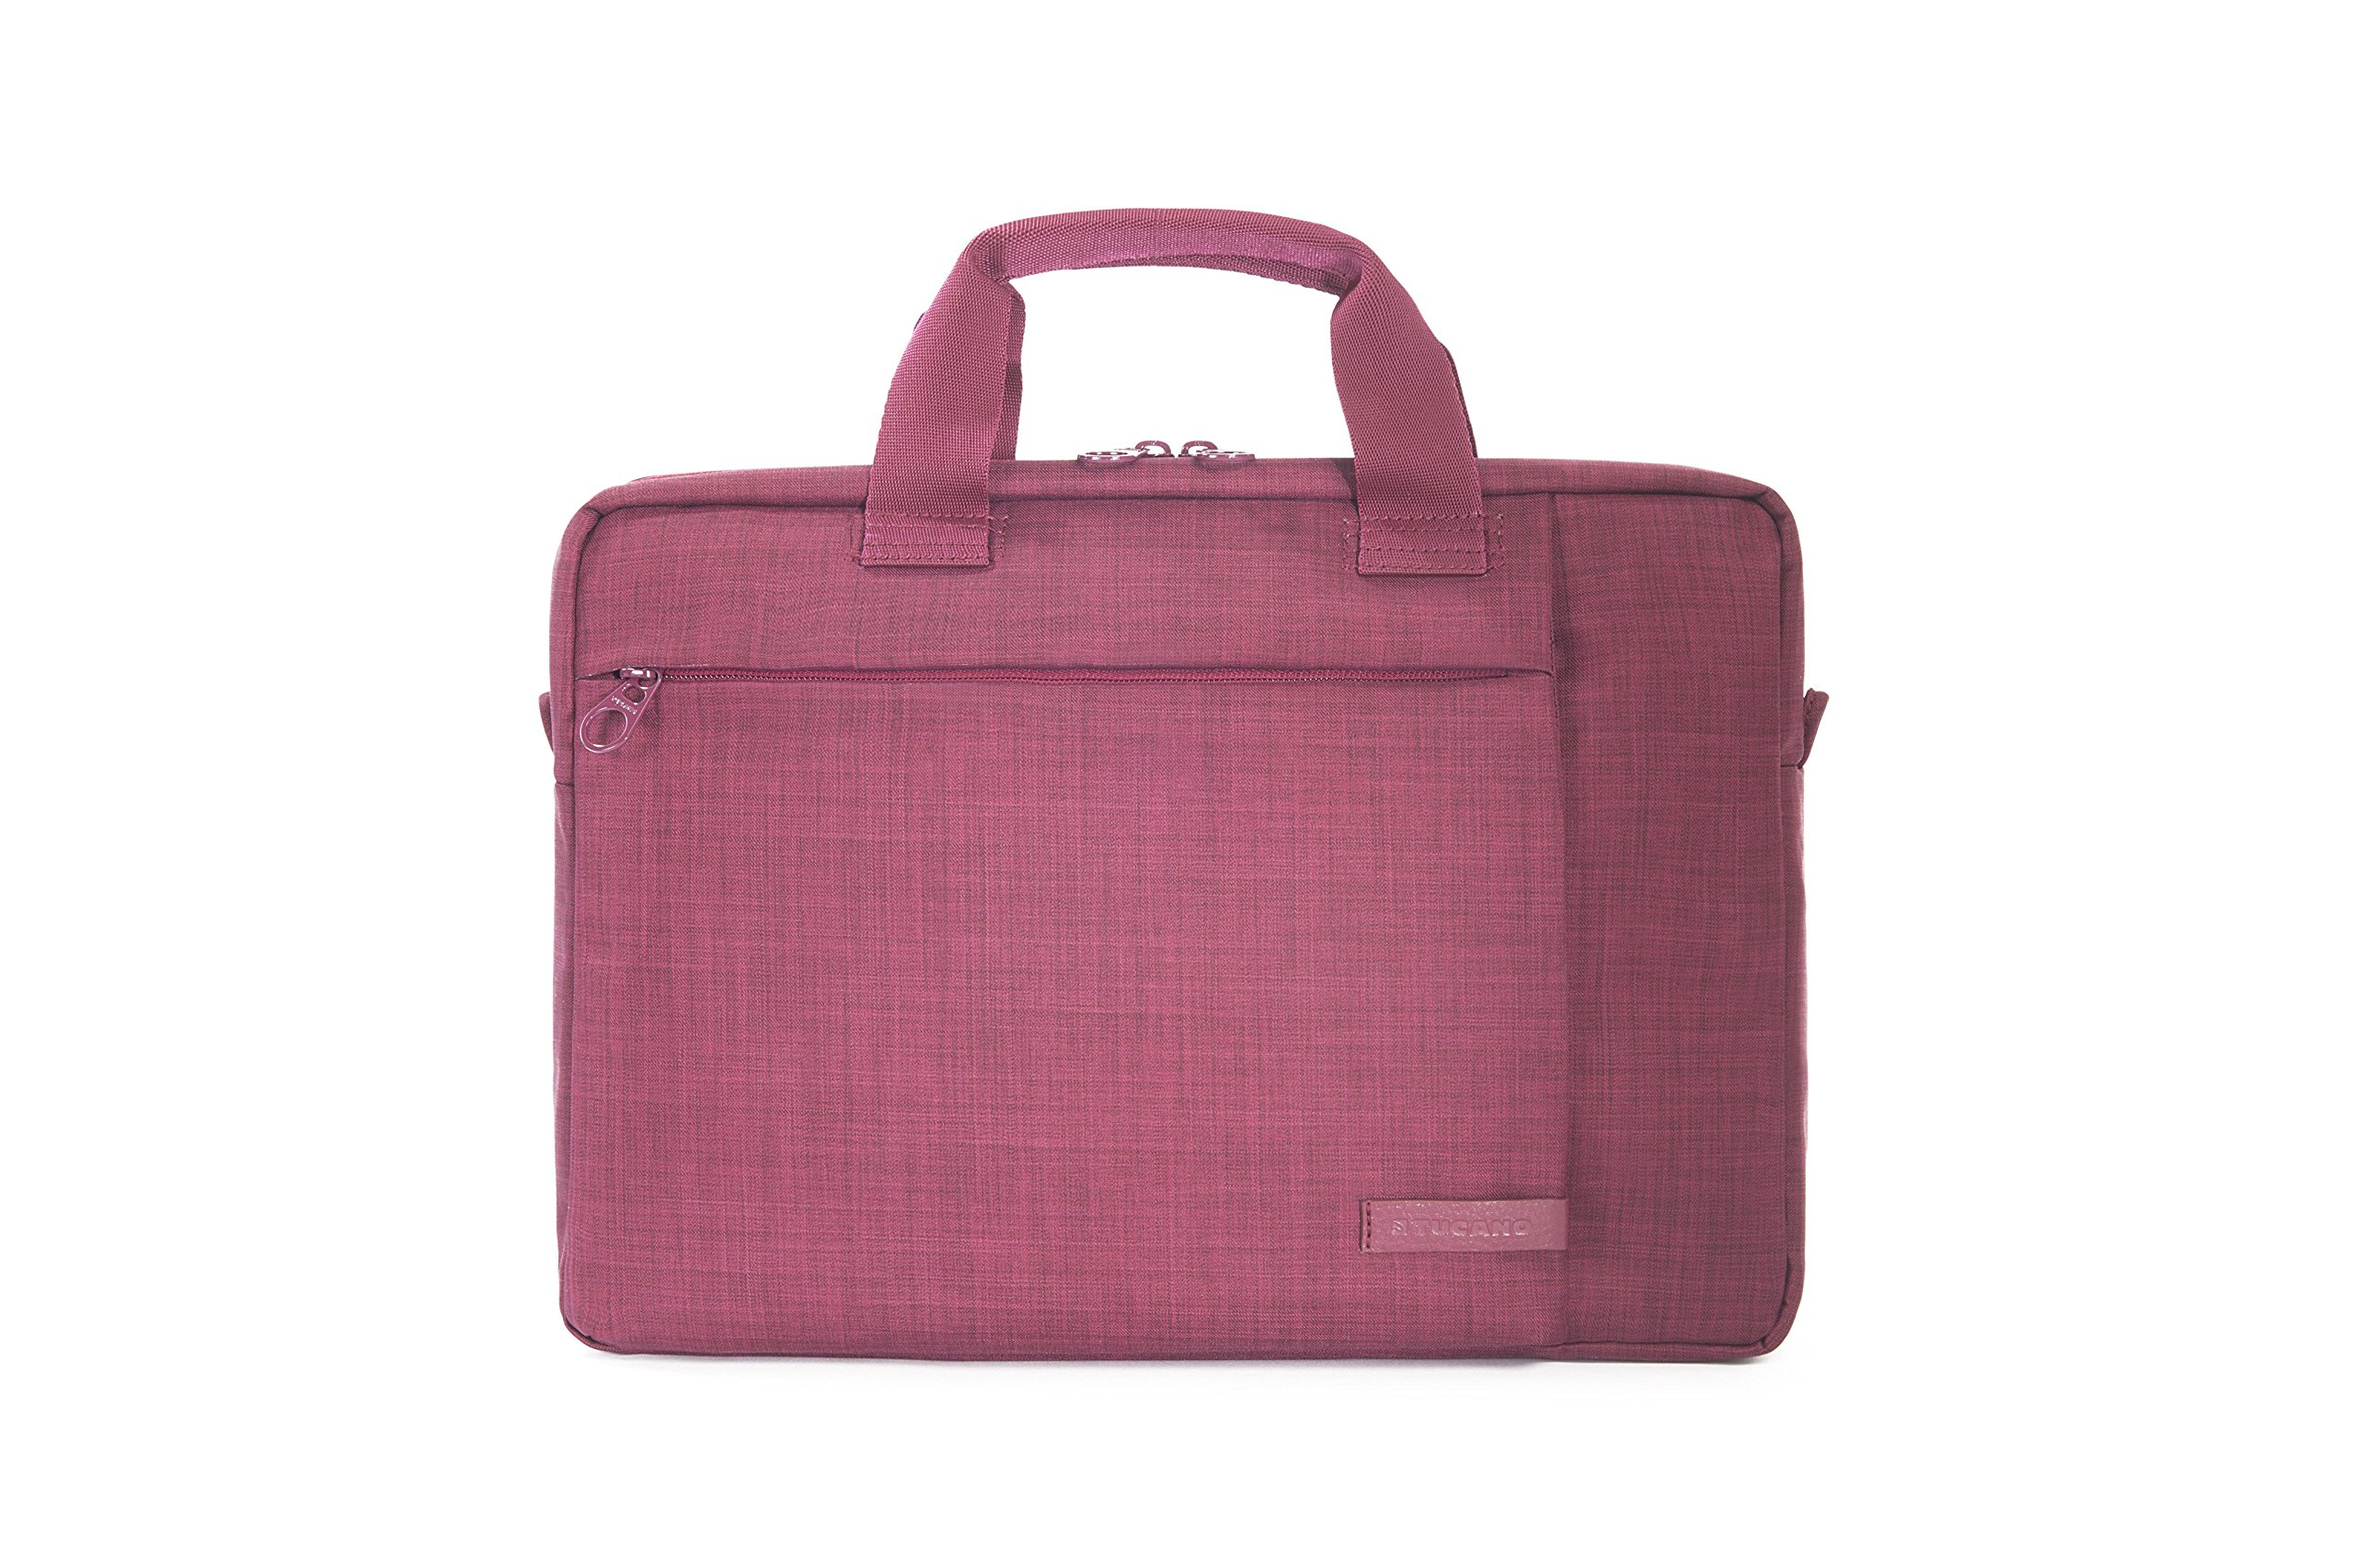 Tucano BSVO1112-BX Laptop Computer Bags & Cases